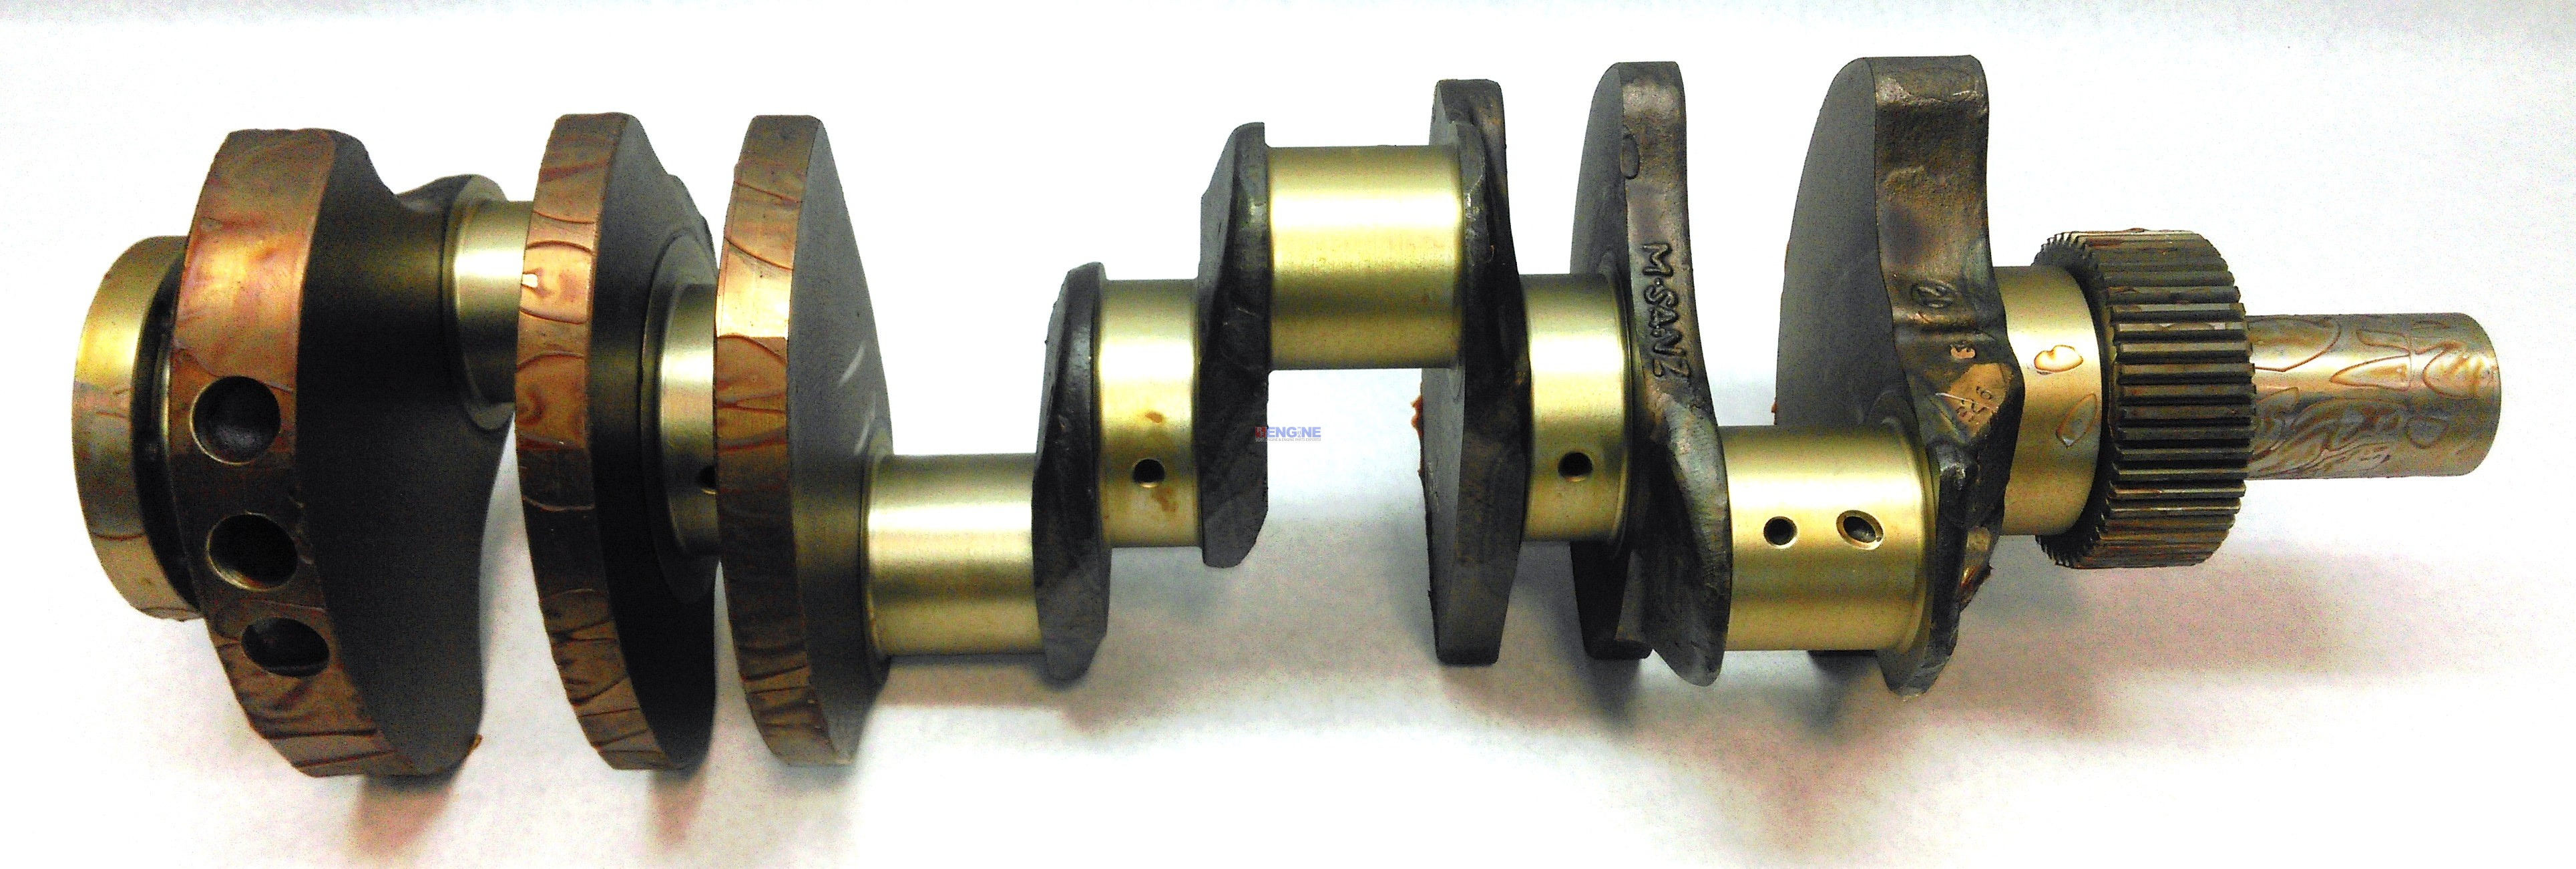 Caterpillar crankshaft new forged 3208